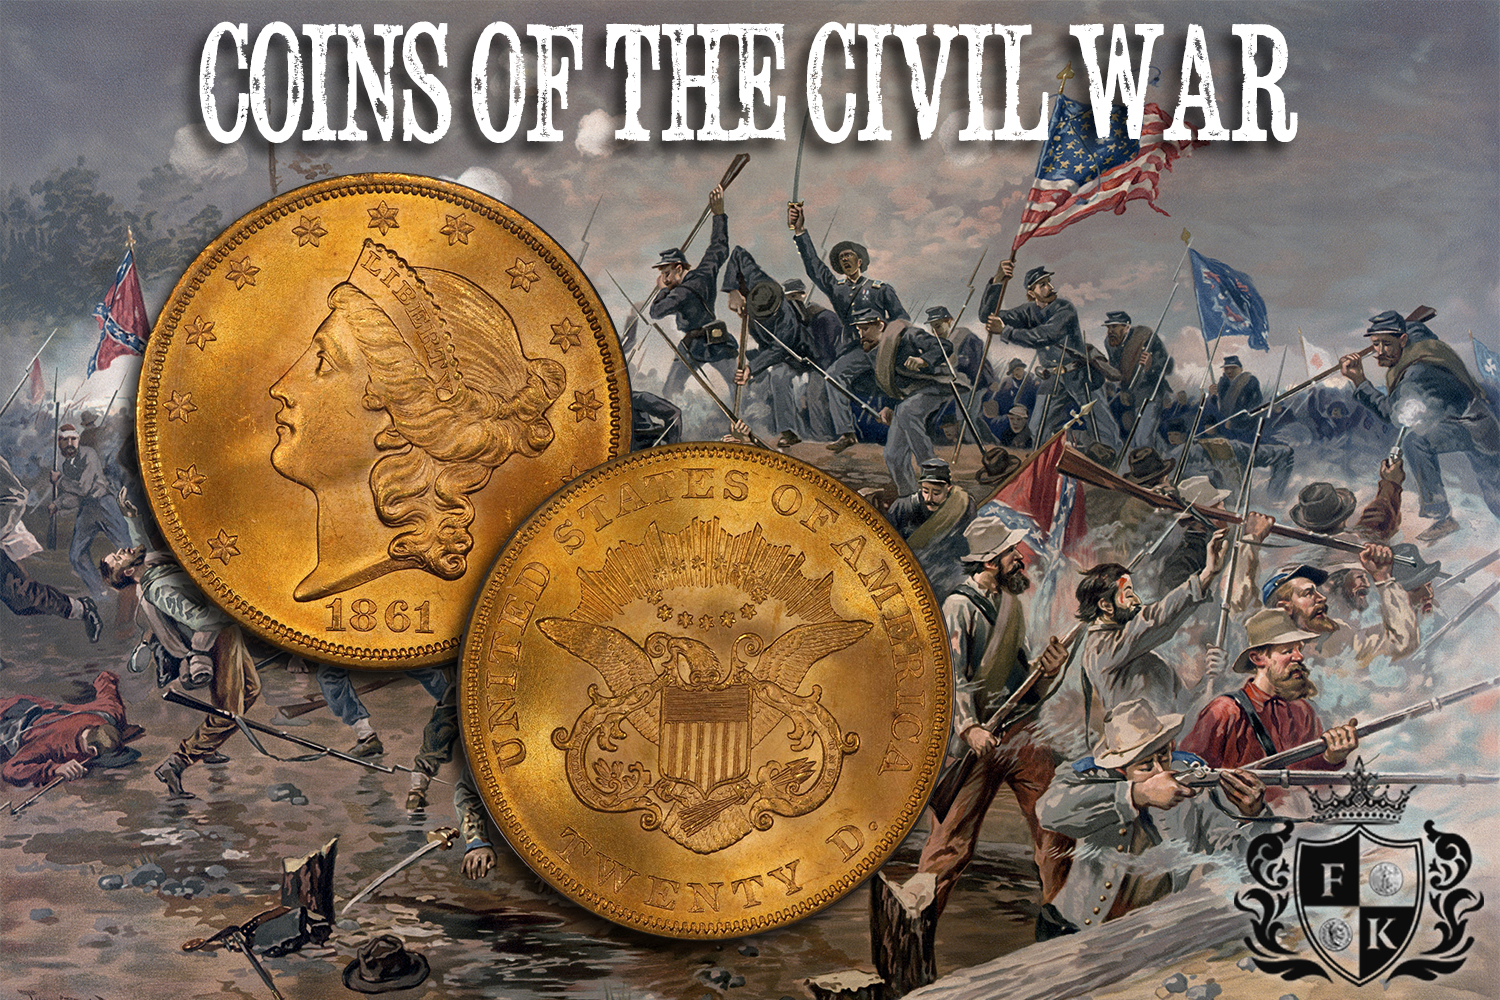 Finest Known Civil War Coinage